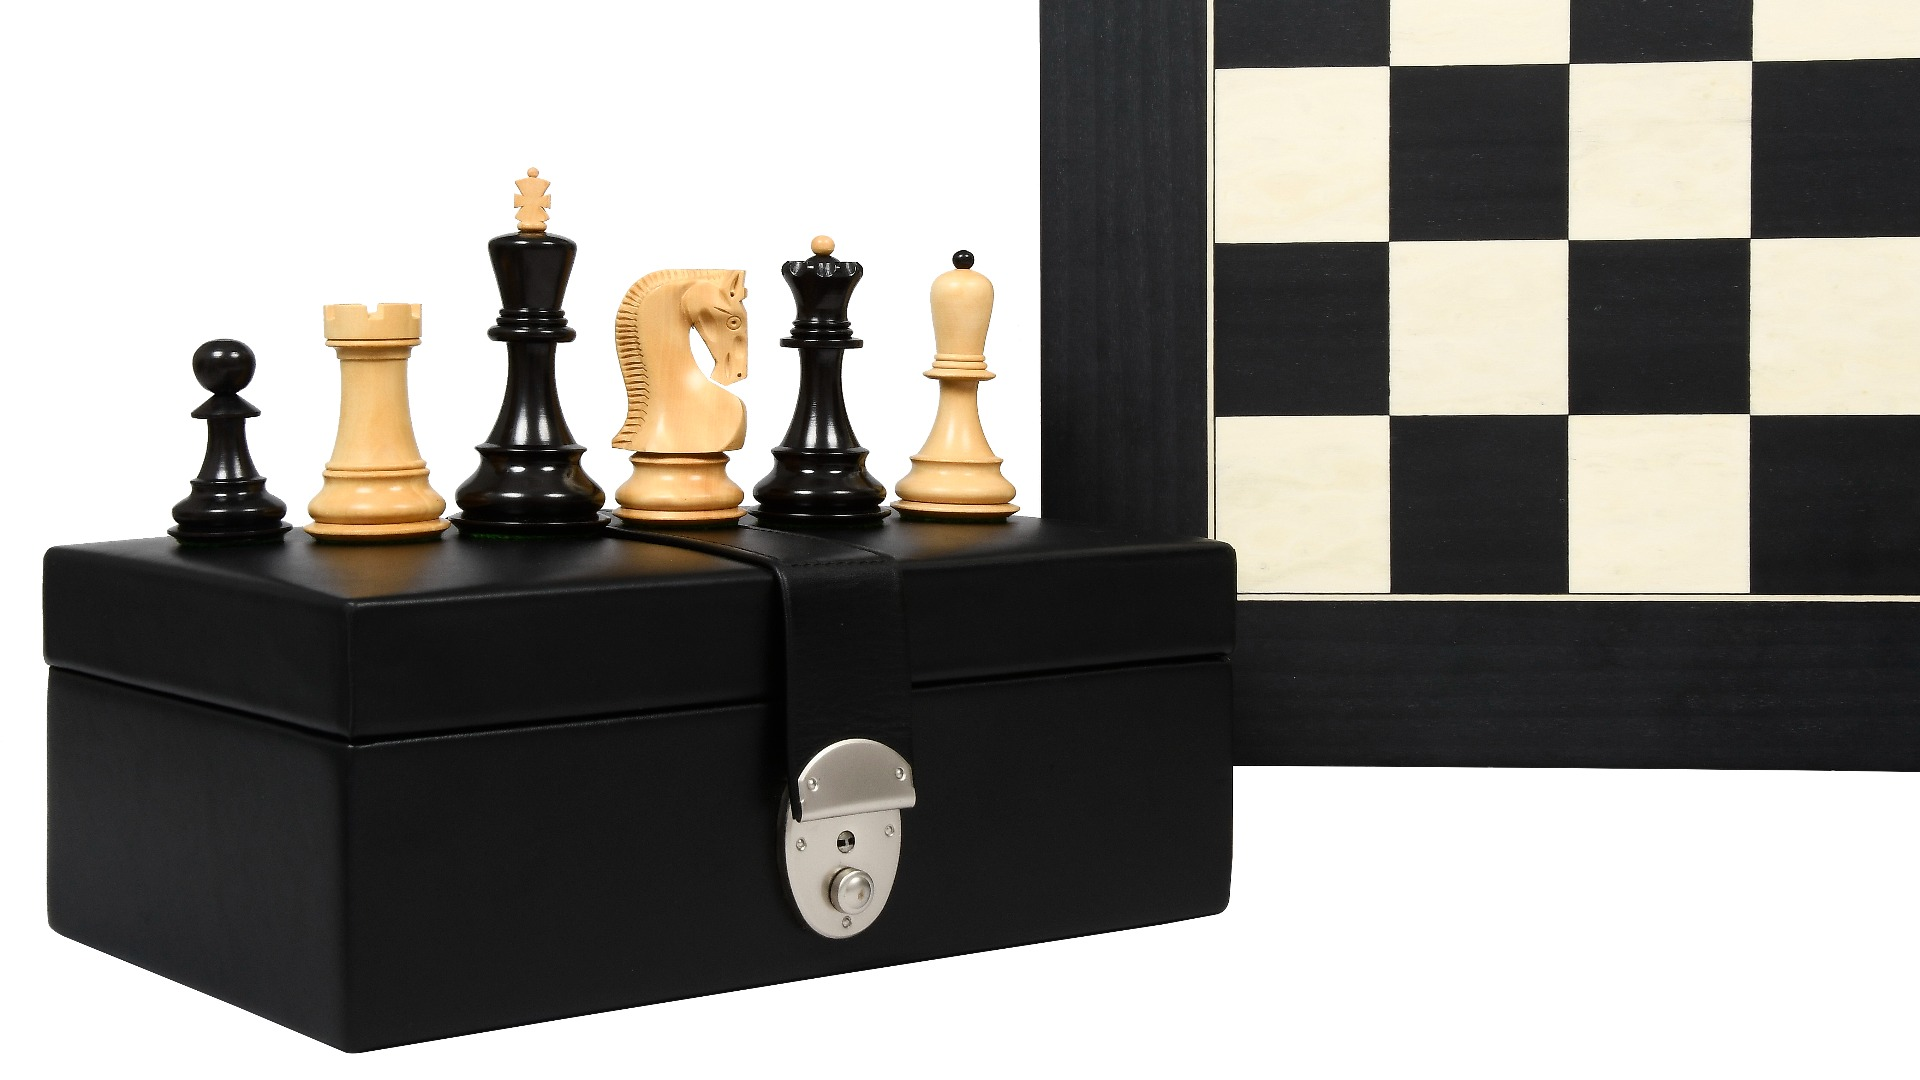 """Exclusive Russian Zagreb Tournament Weighted Chess Pieces in Ebonized Boxwood & Natural Boxwood - 3.9"""" King with Wooden Chessboard & Storage Box"""